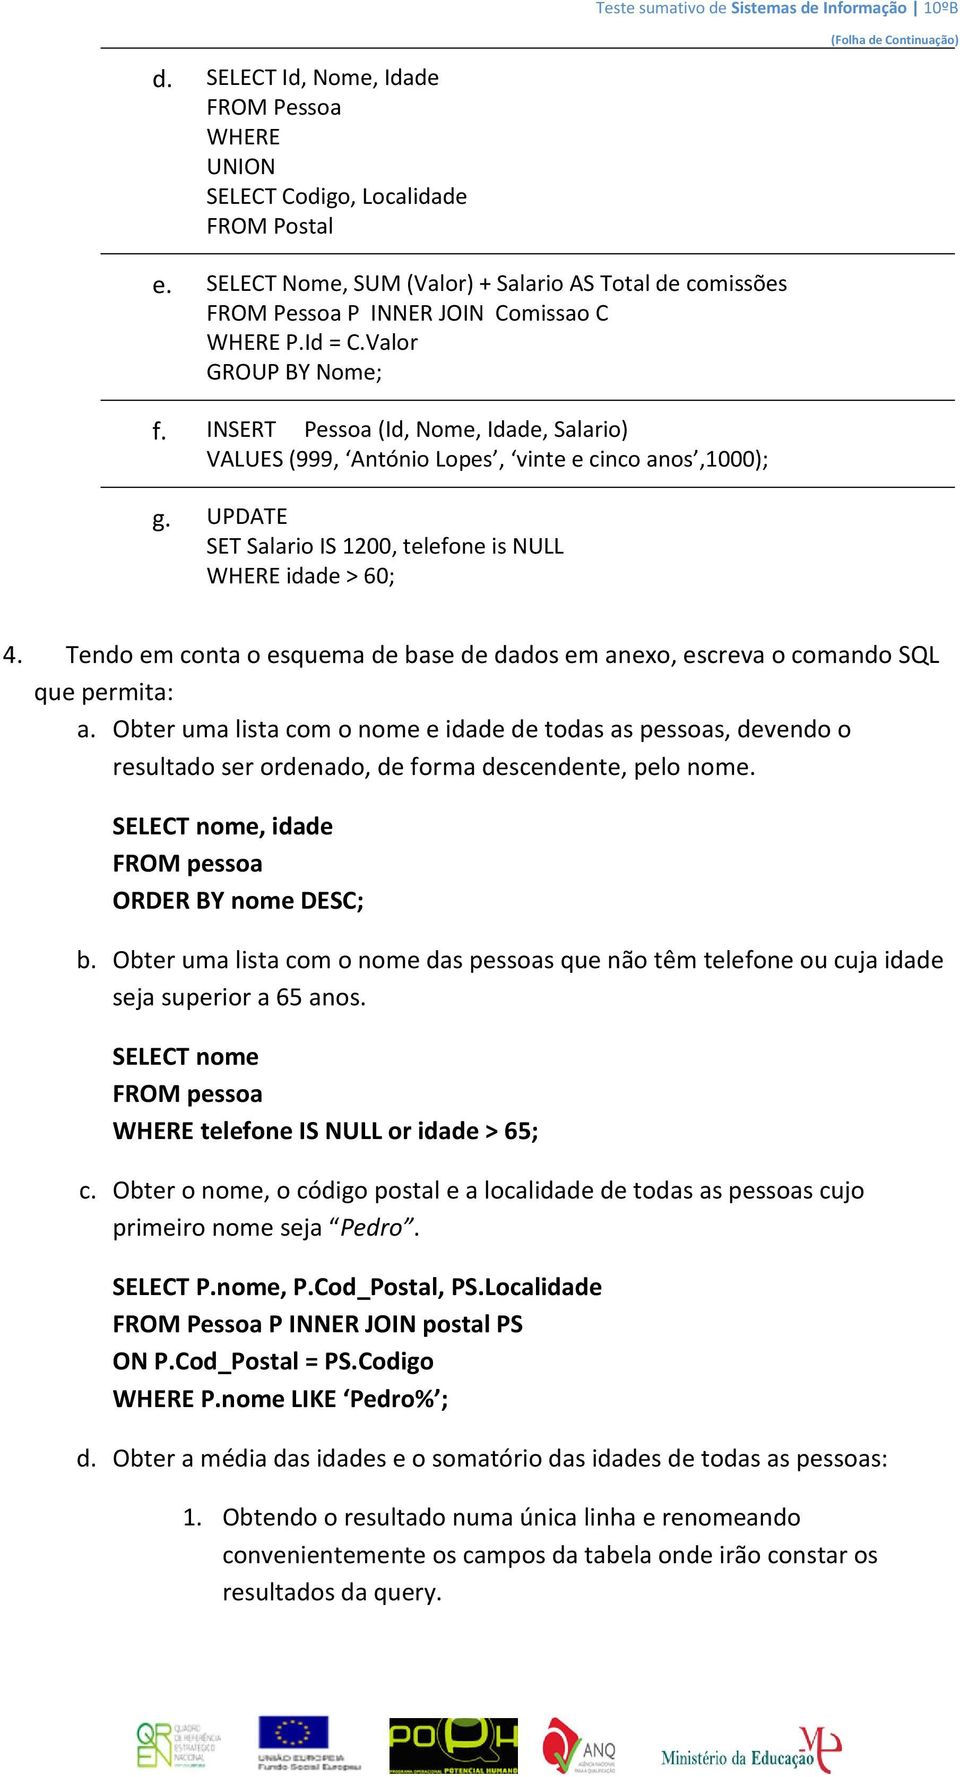 INSERT Pessoa (Id, Nome, Idade, Salario) ALUES (999, António Lopes, vinte e cinco anos,1000); g. UPDATE SET Salario IS 1200, telefone is NULL WHERE idade > 60; 4.